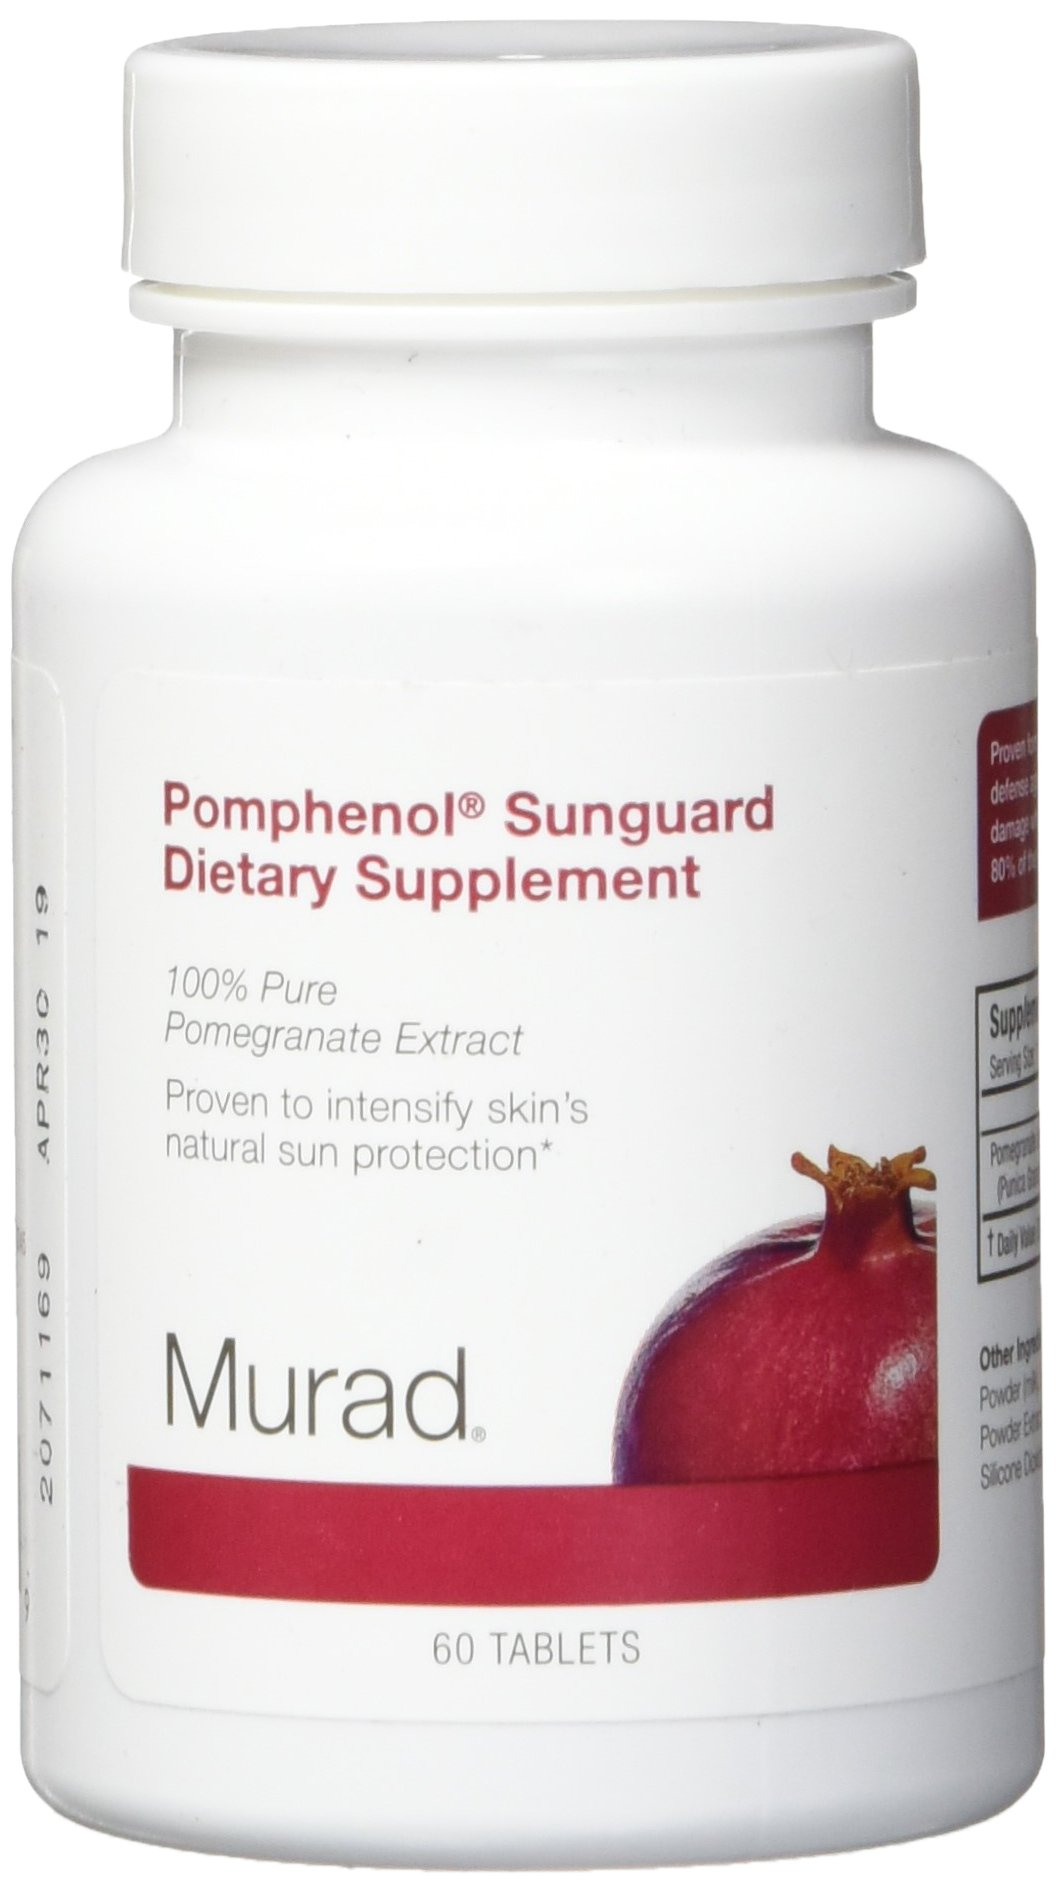 Murad Pomphenol Sunguard Dietary Supplement, 100% Pure Pomegrante Extract, 60 Tablets